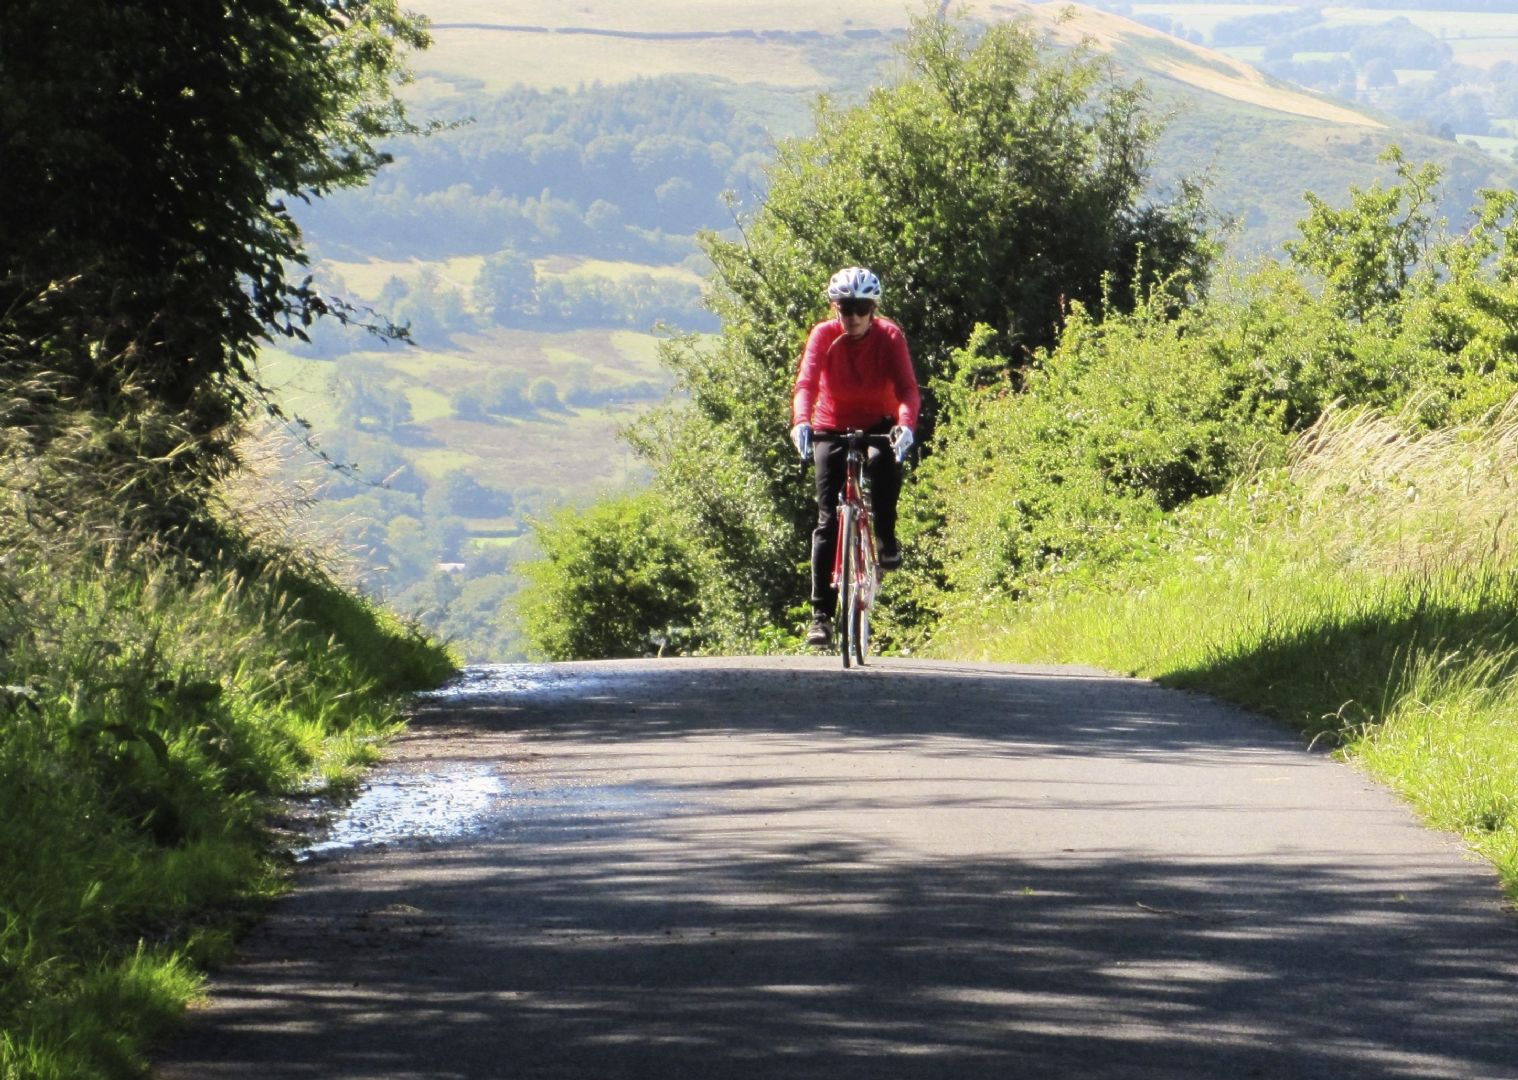 _Customer.73824.11942.jpg - UK - C2C - Coast to Coast 4 Days Cycling - Self-Guided Leisure Cycling Holiday - Leisure Cycling